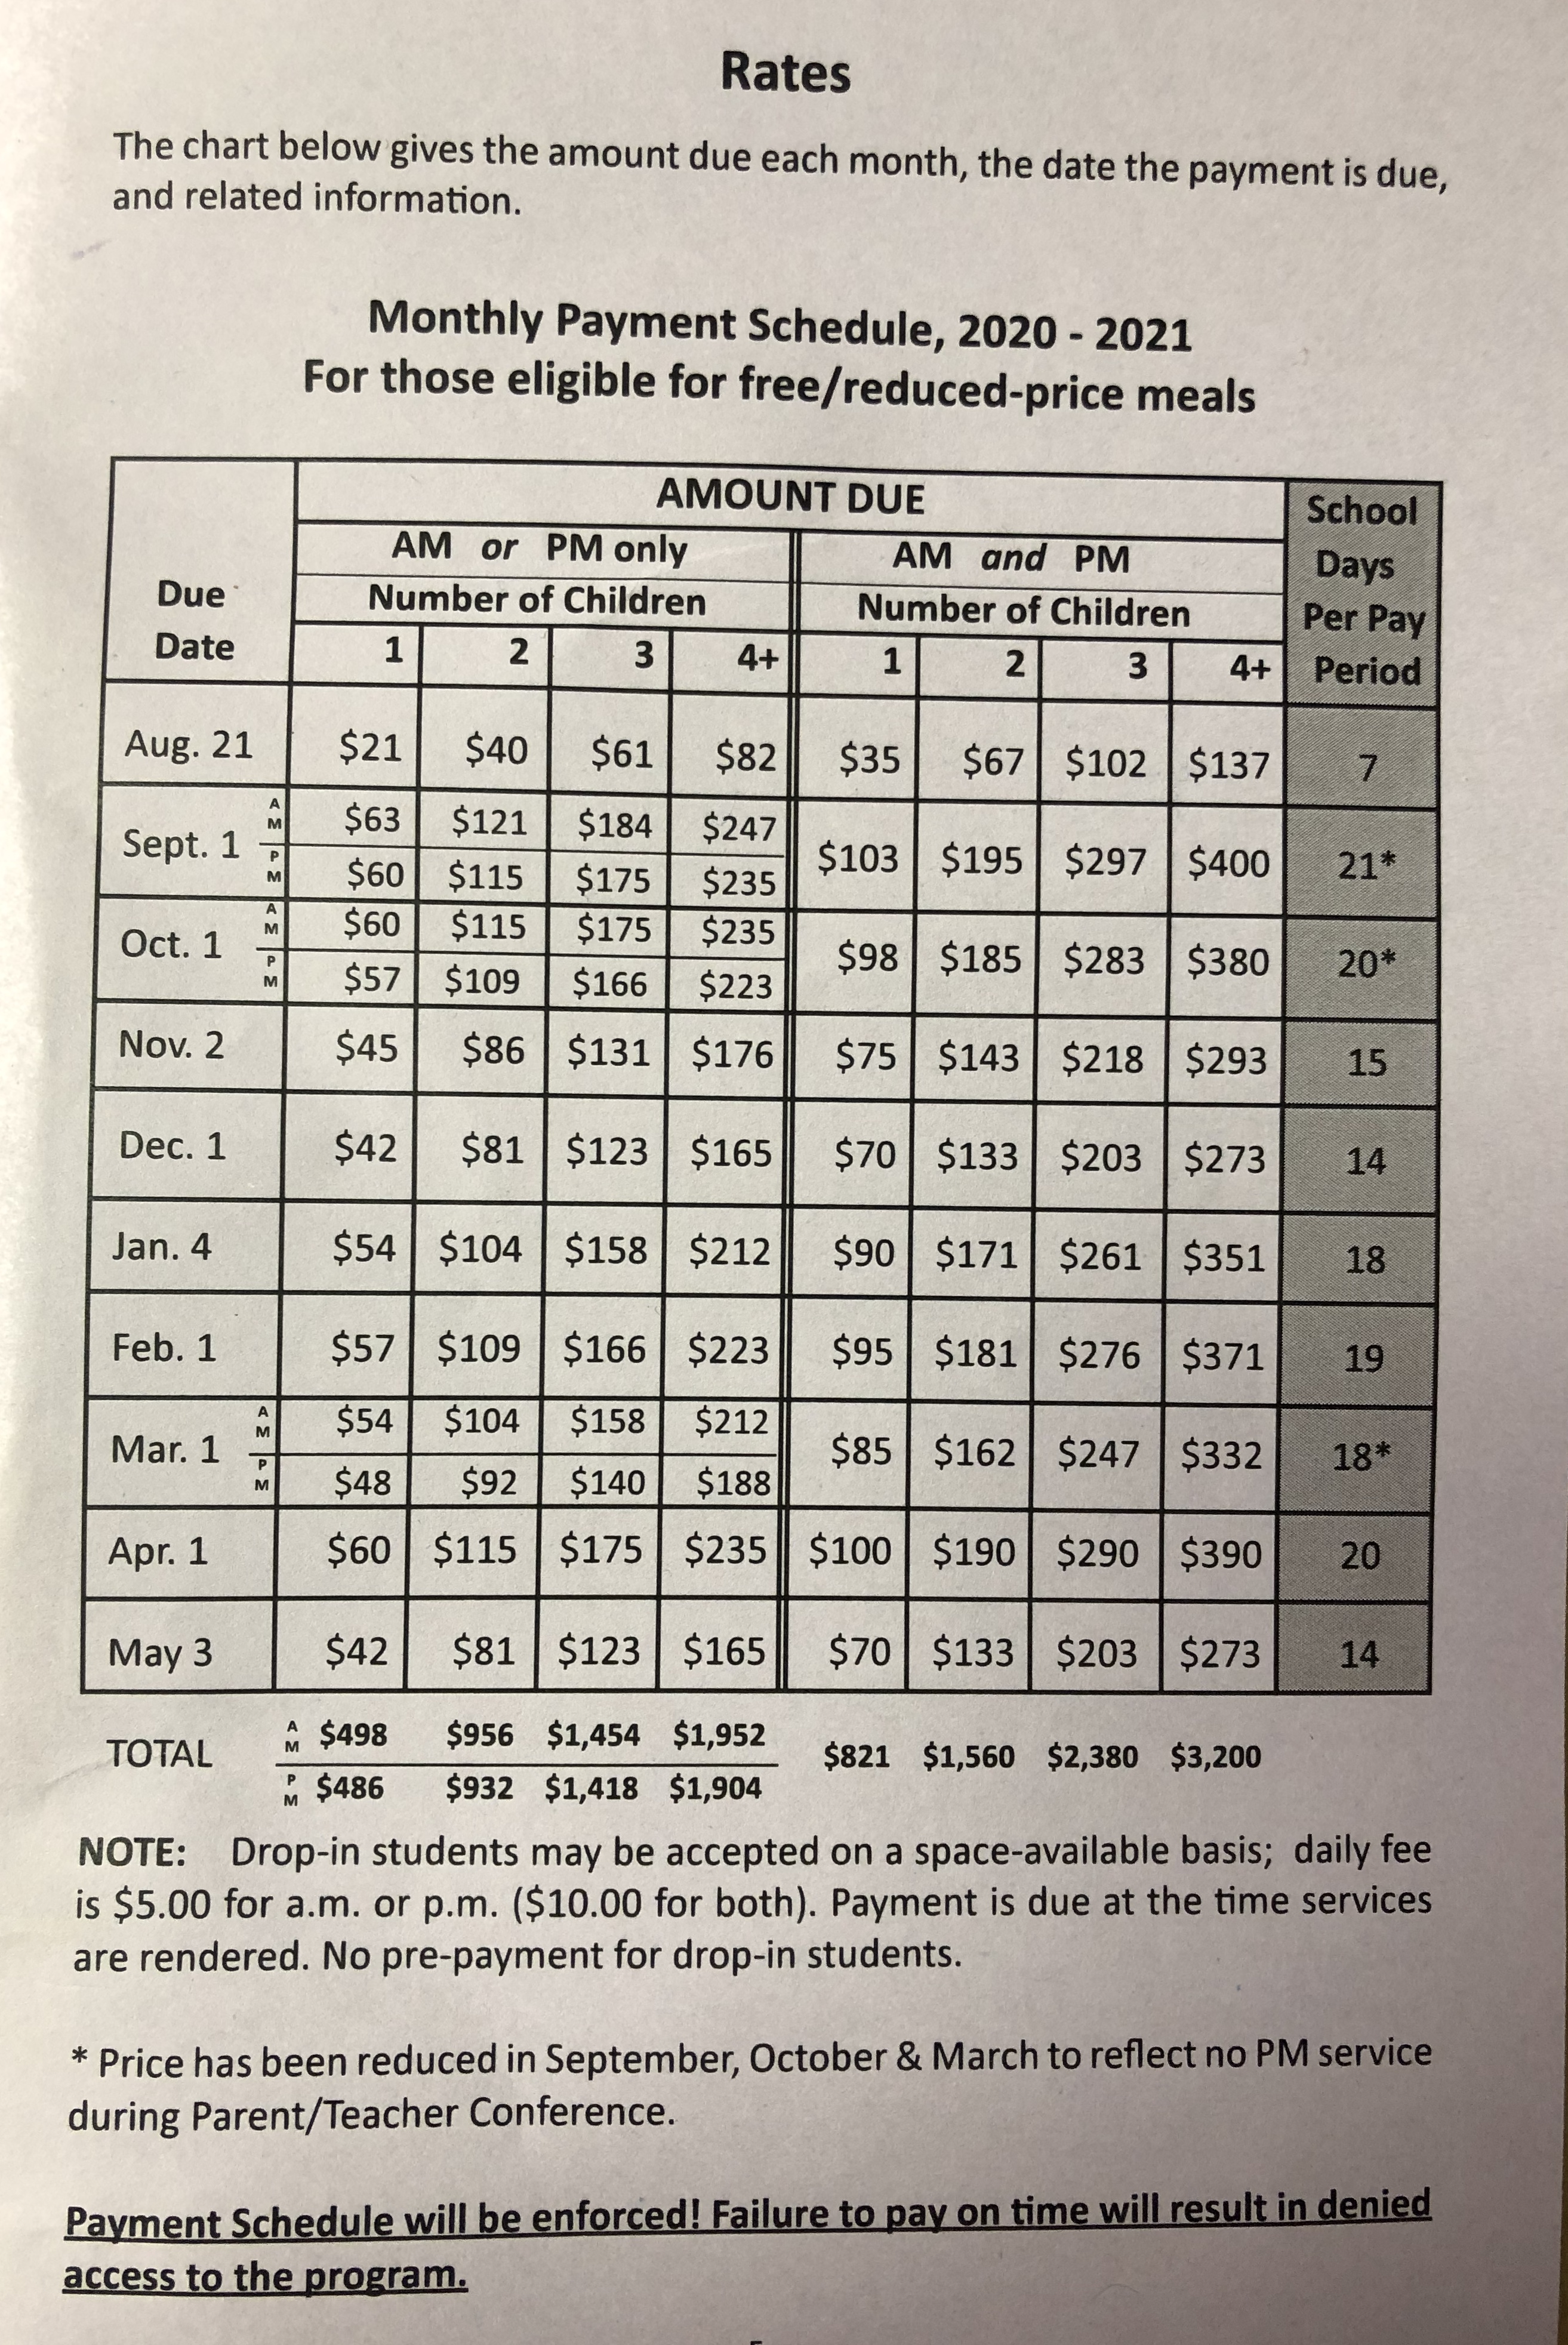 Payment schedule for X-Tended Time *for those eligible for FREE and REDUCED priced meals